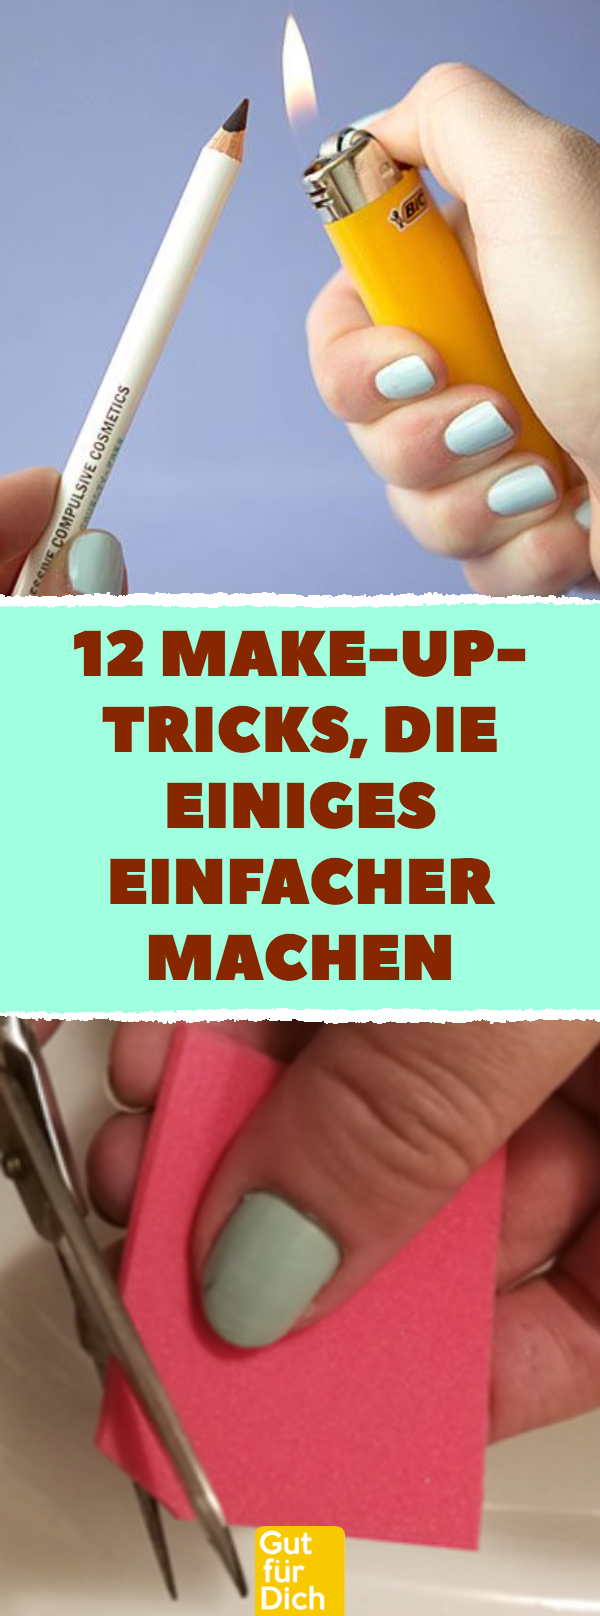 Photo of 12 Make-up-Tricks, die einiges einfacher machen